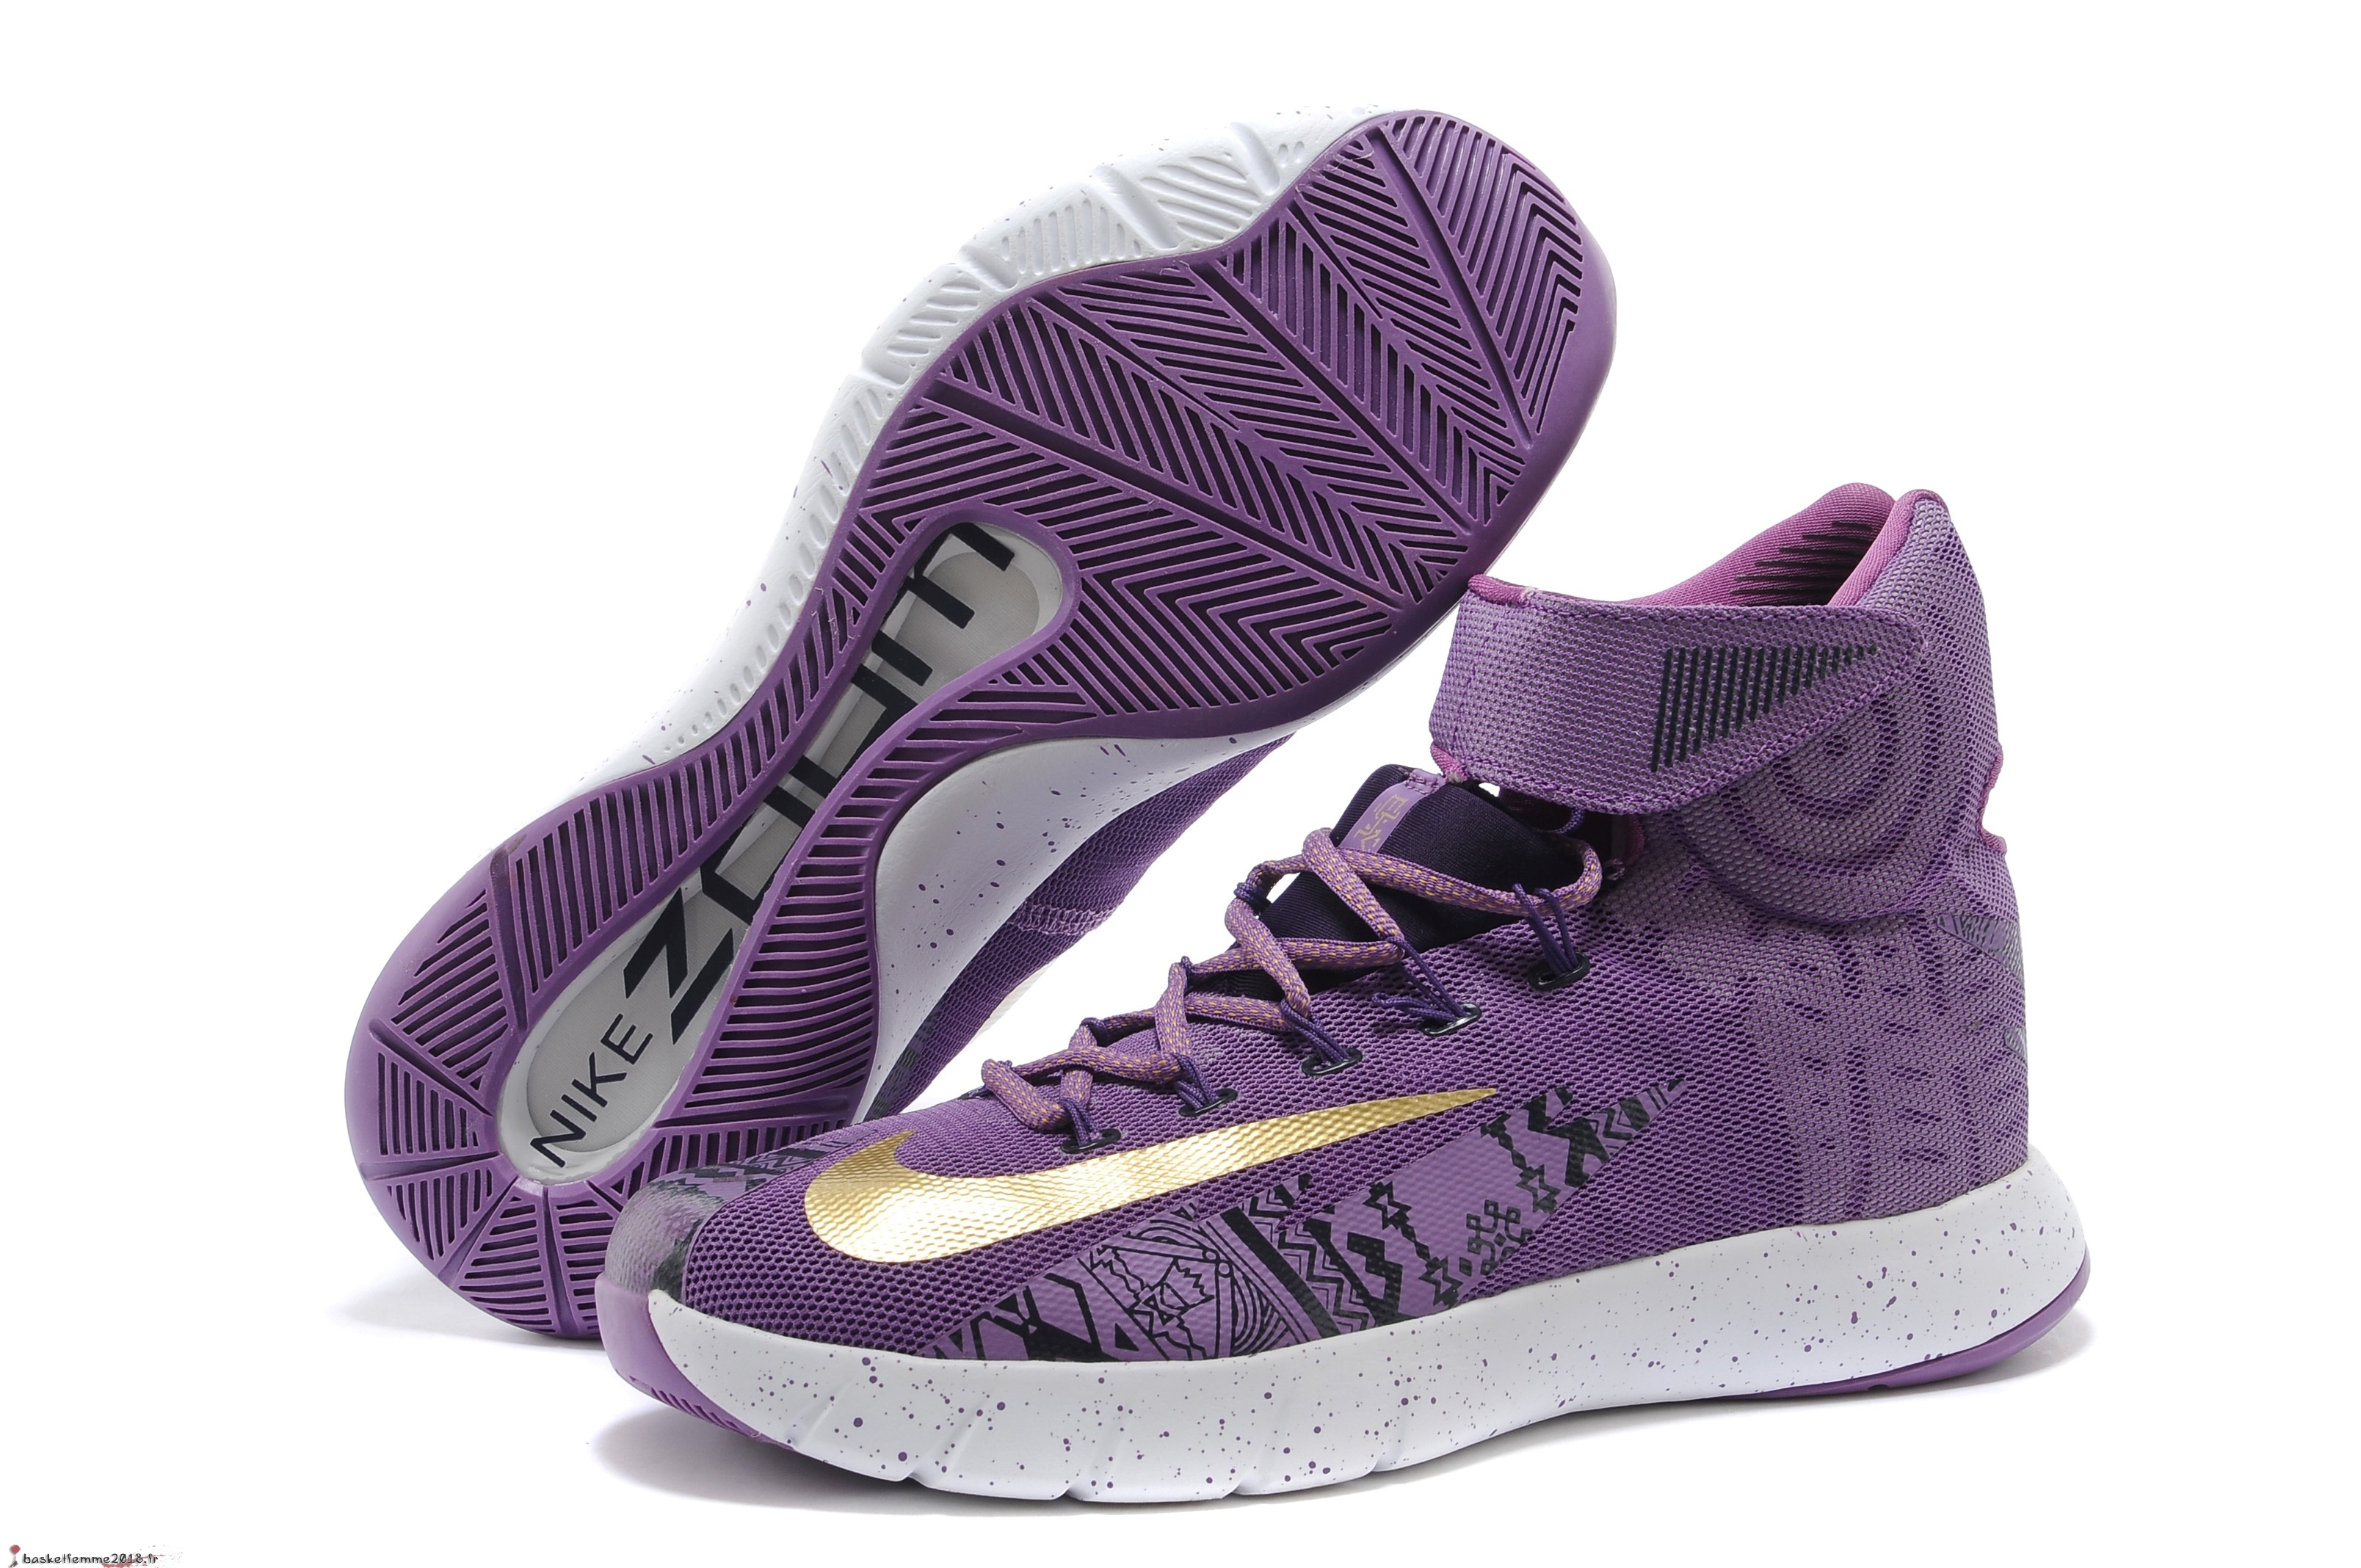 Nike Zoom Hyperrev Kyrie Irving Homme Pourpre Chaussure de Basket